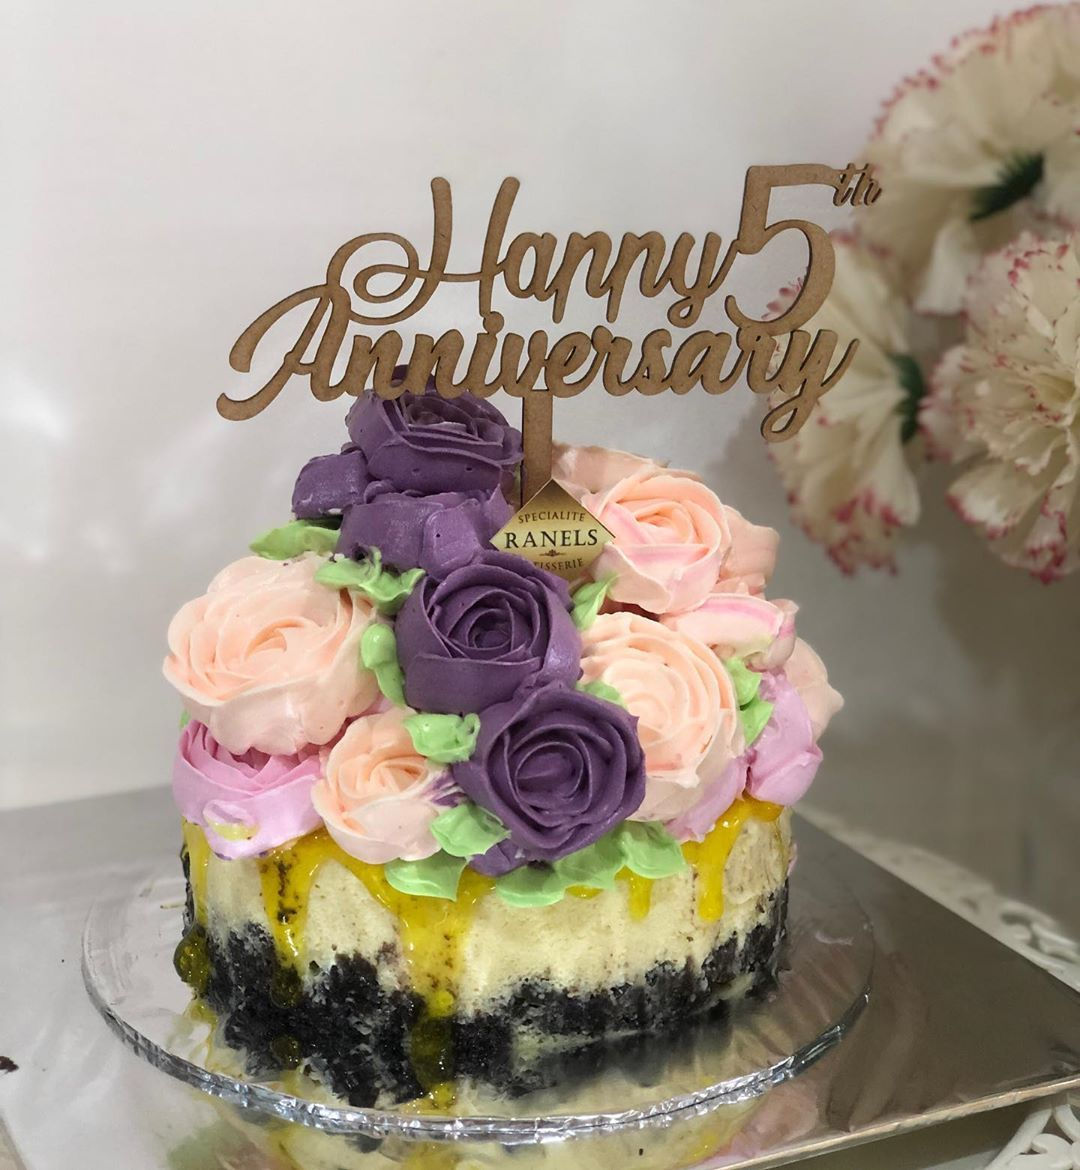 Made By Request Korean Butter Cream Only 100 Rb Lemon Cheese Cake 15 Cm Contact Us 087824162494 Wa Ig Ranel Lemon Cheese Premium Ingredients Food